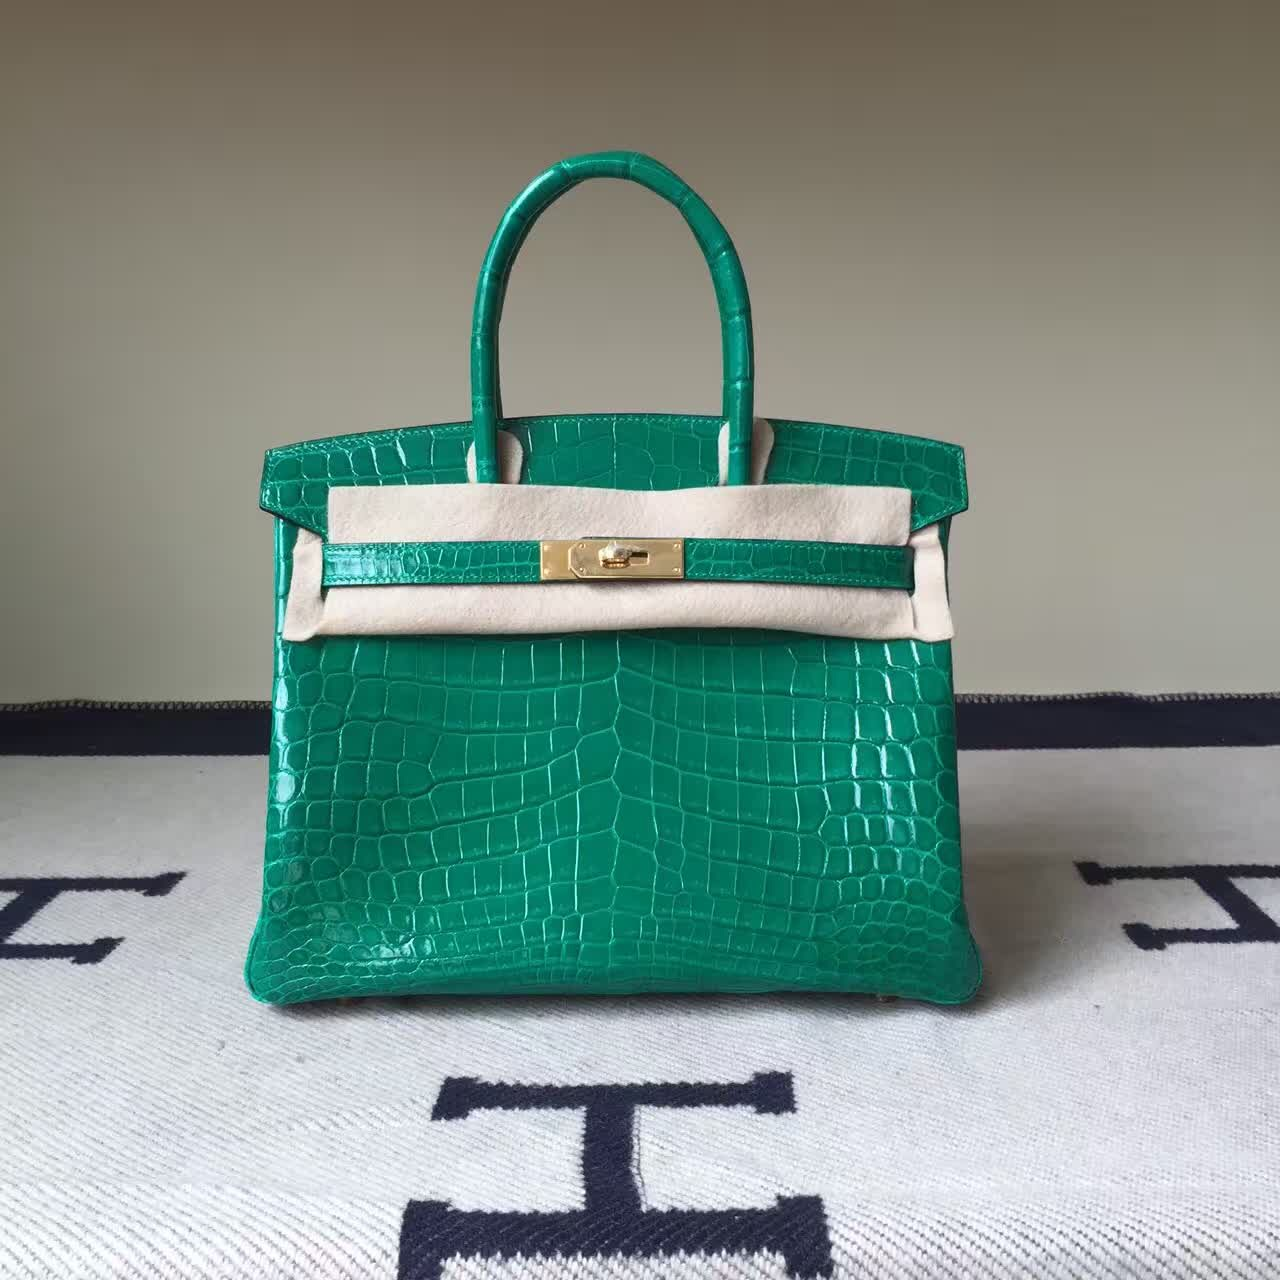 264579b1fe8b Discount Hermes Birkin Bag 30cm 6Q Emerald Green Shiny Crocodile Leather